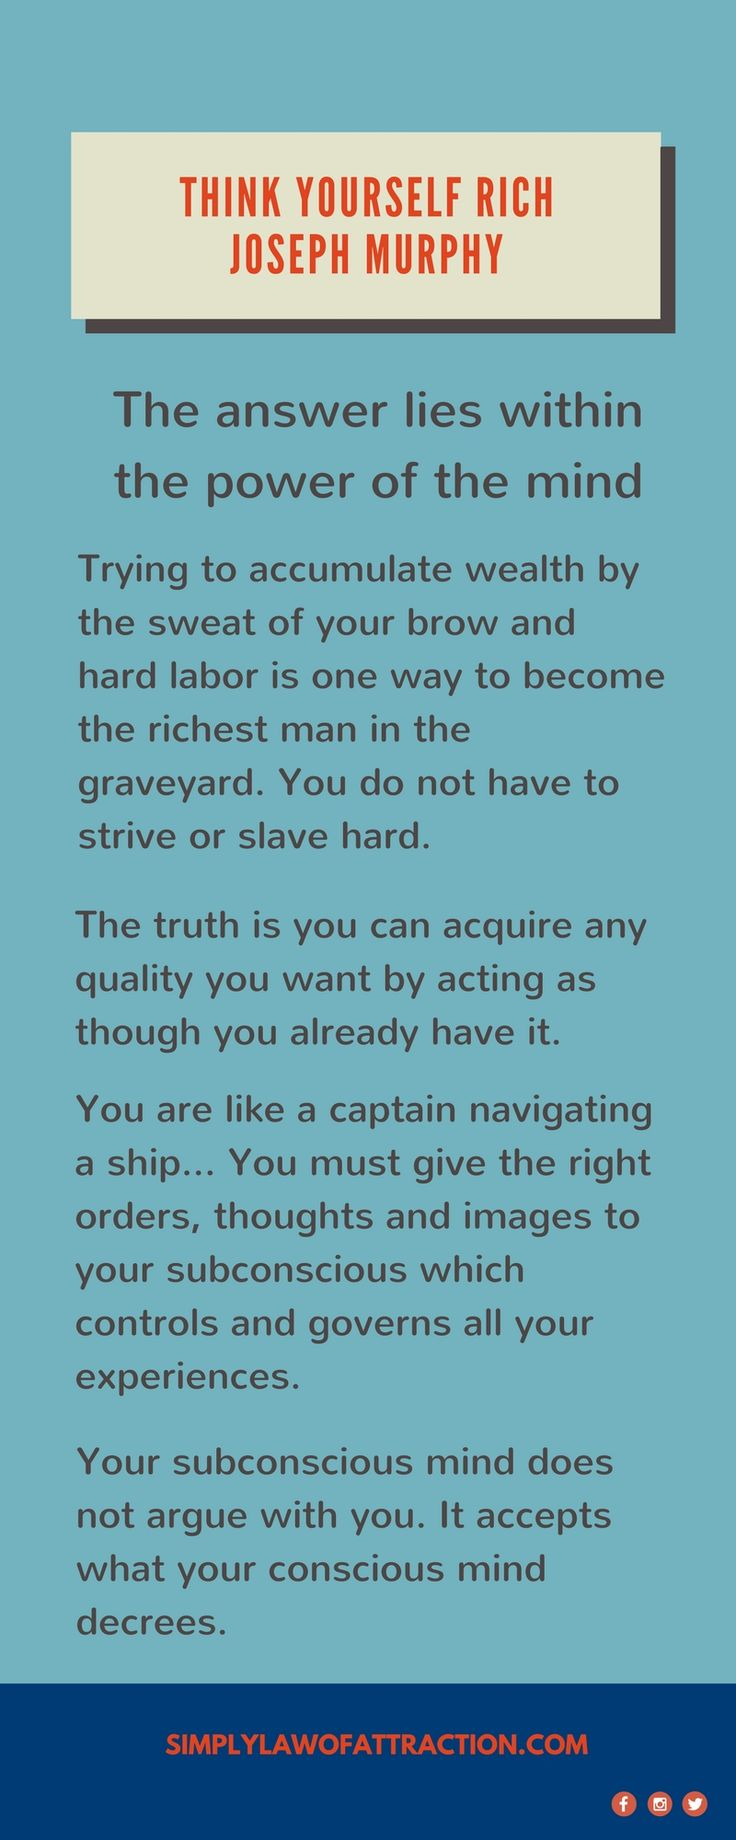 Think Yourself Rich By Joseph Murphy - law of attraction